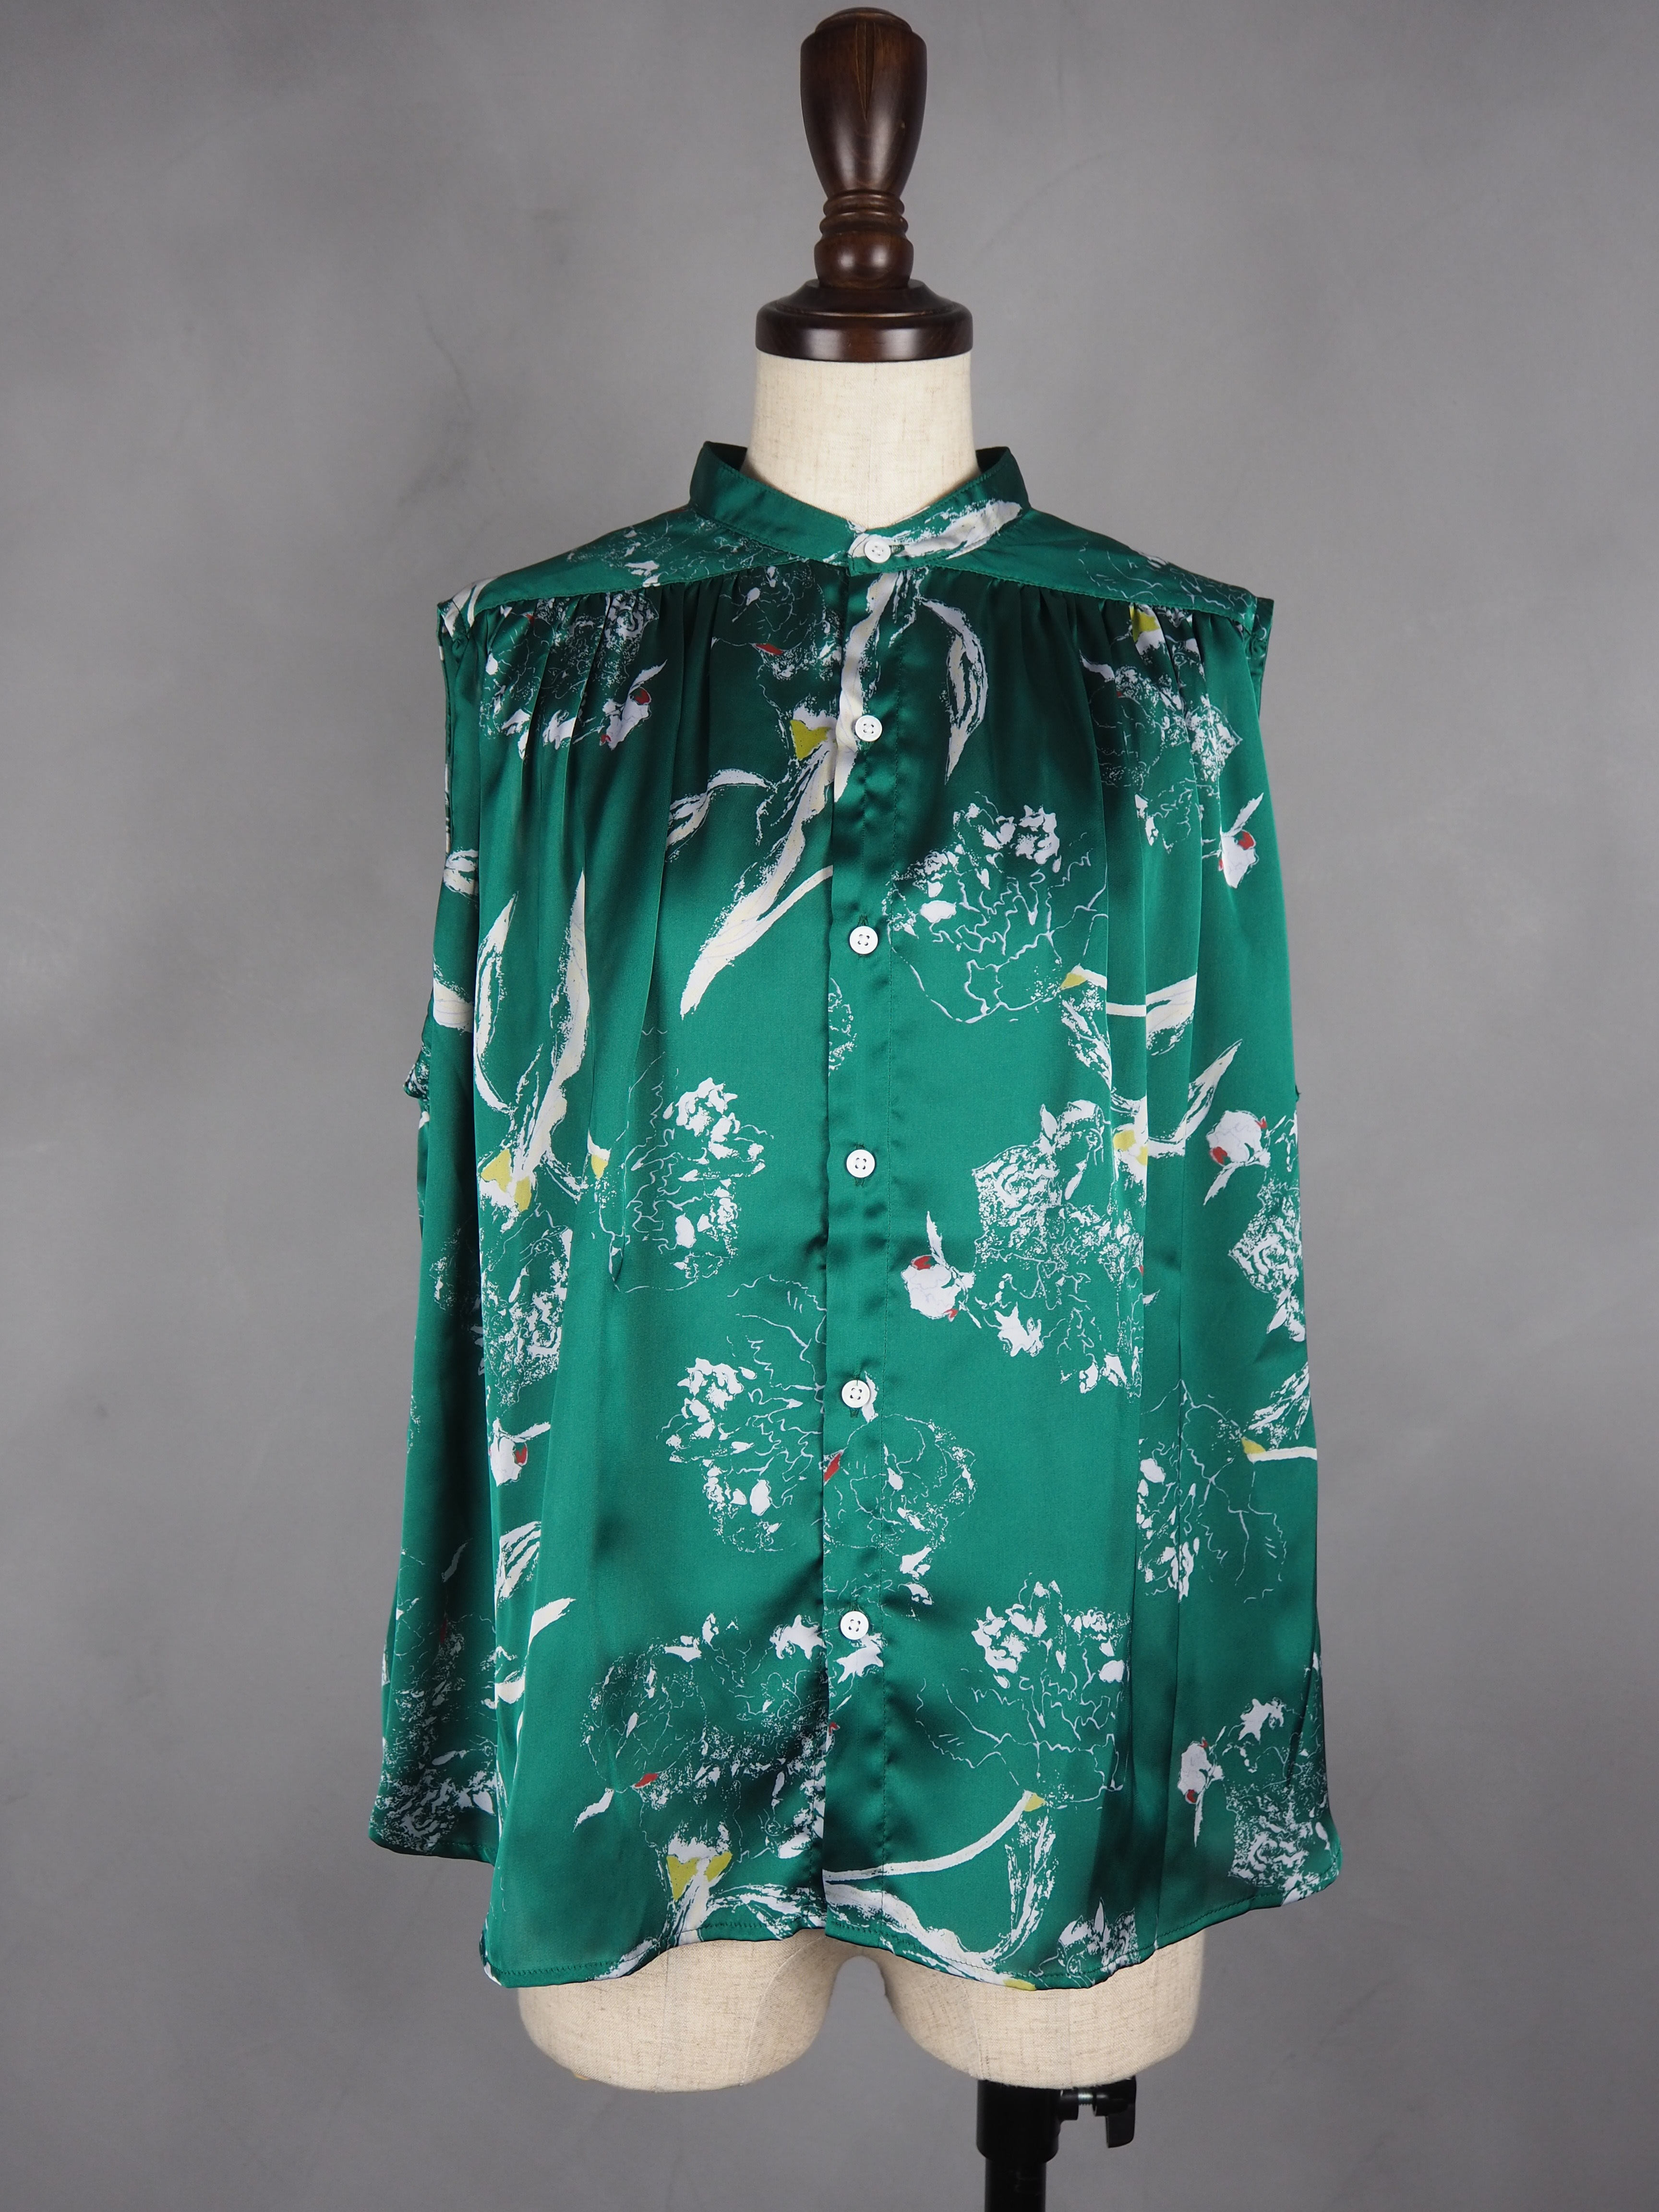 【MANON】DRAWING FLOWER NO SLEEVE BLOUSE